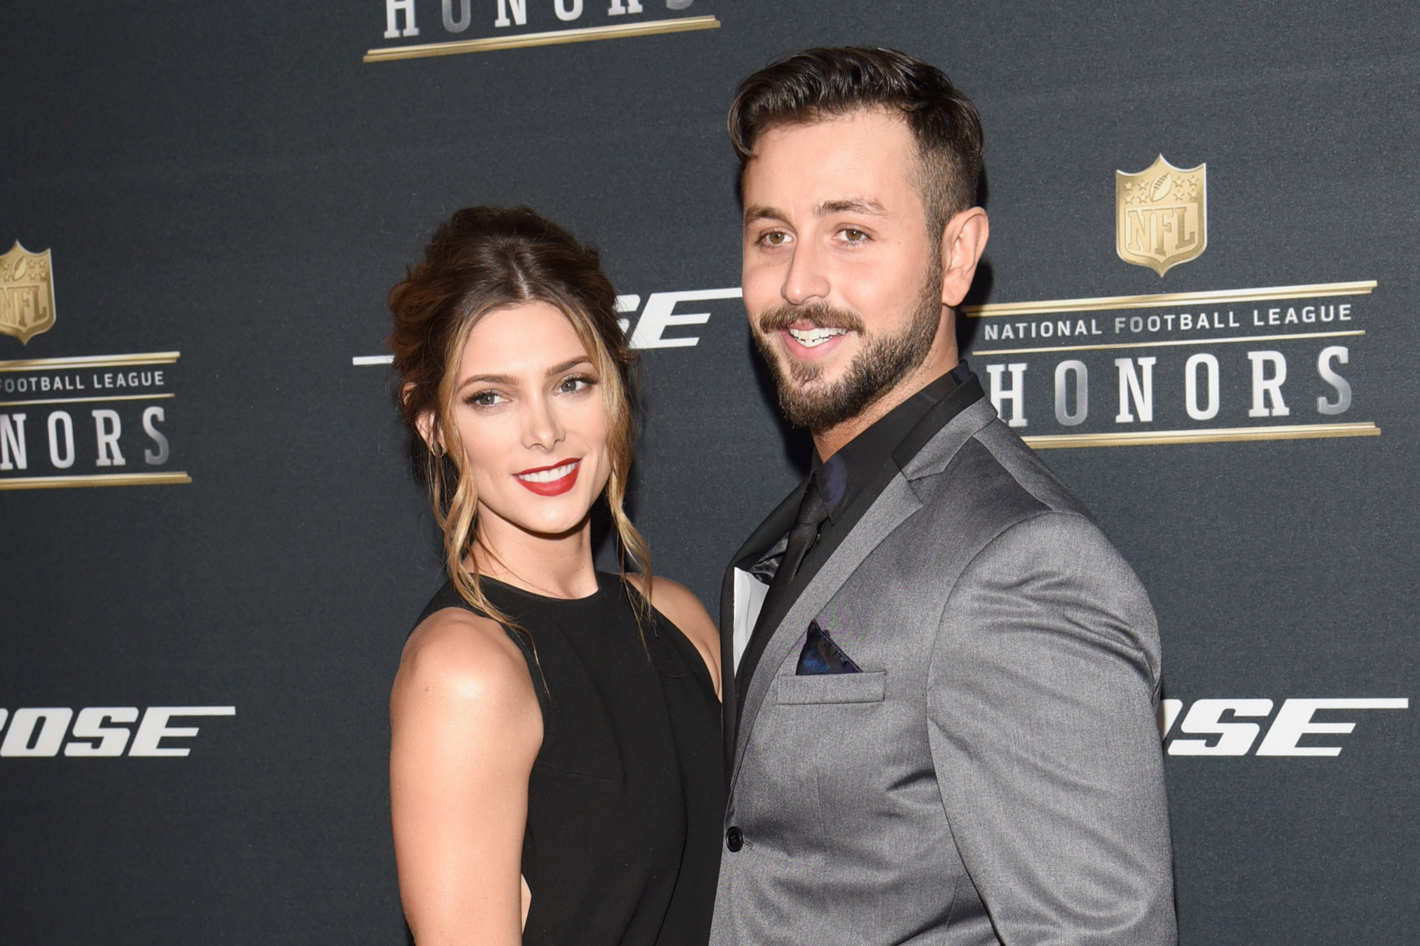 Paul Khoury wiki, wife, net worth, age, height, family